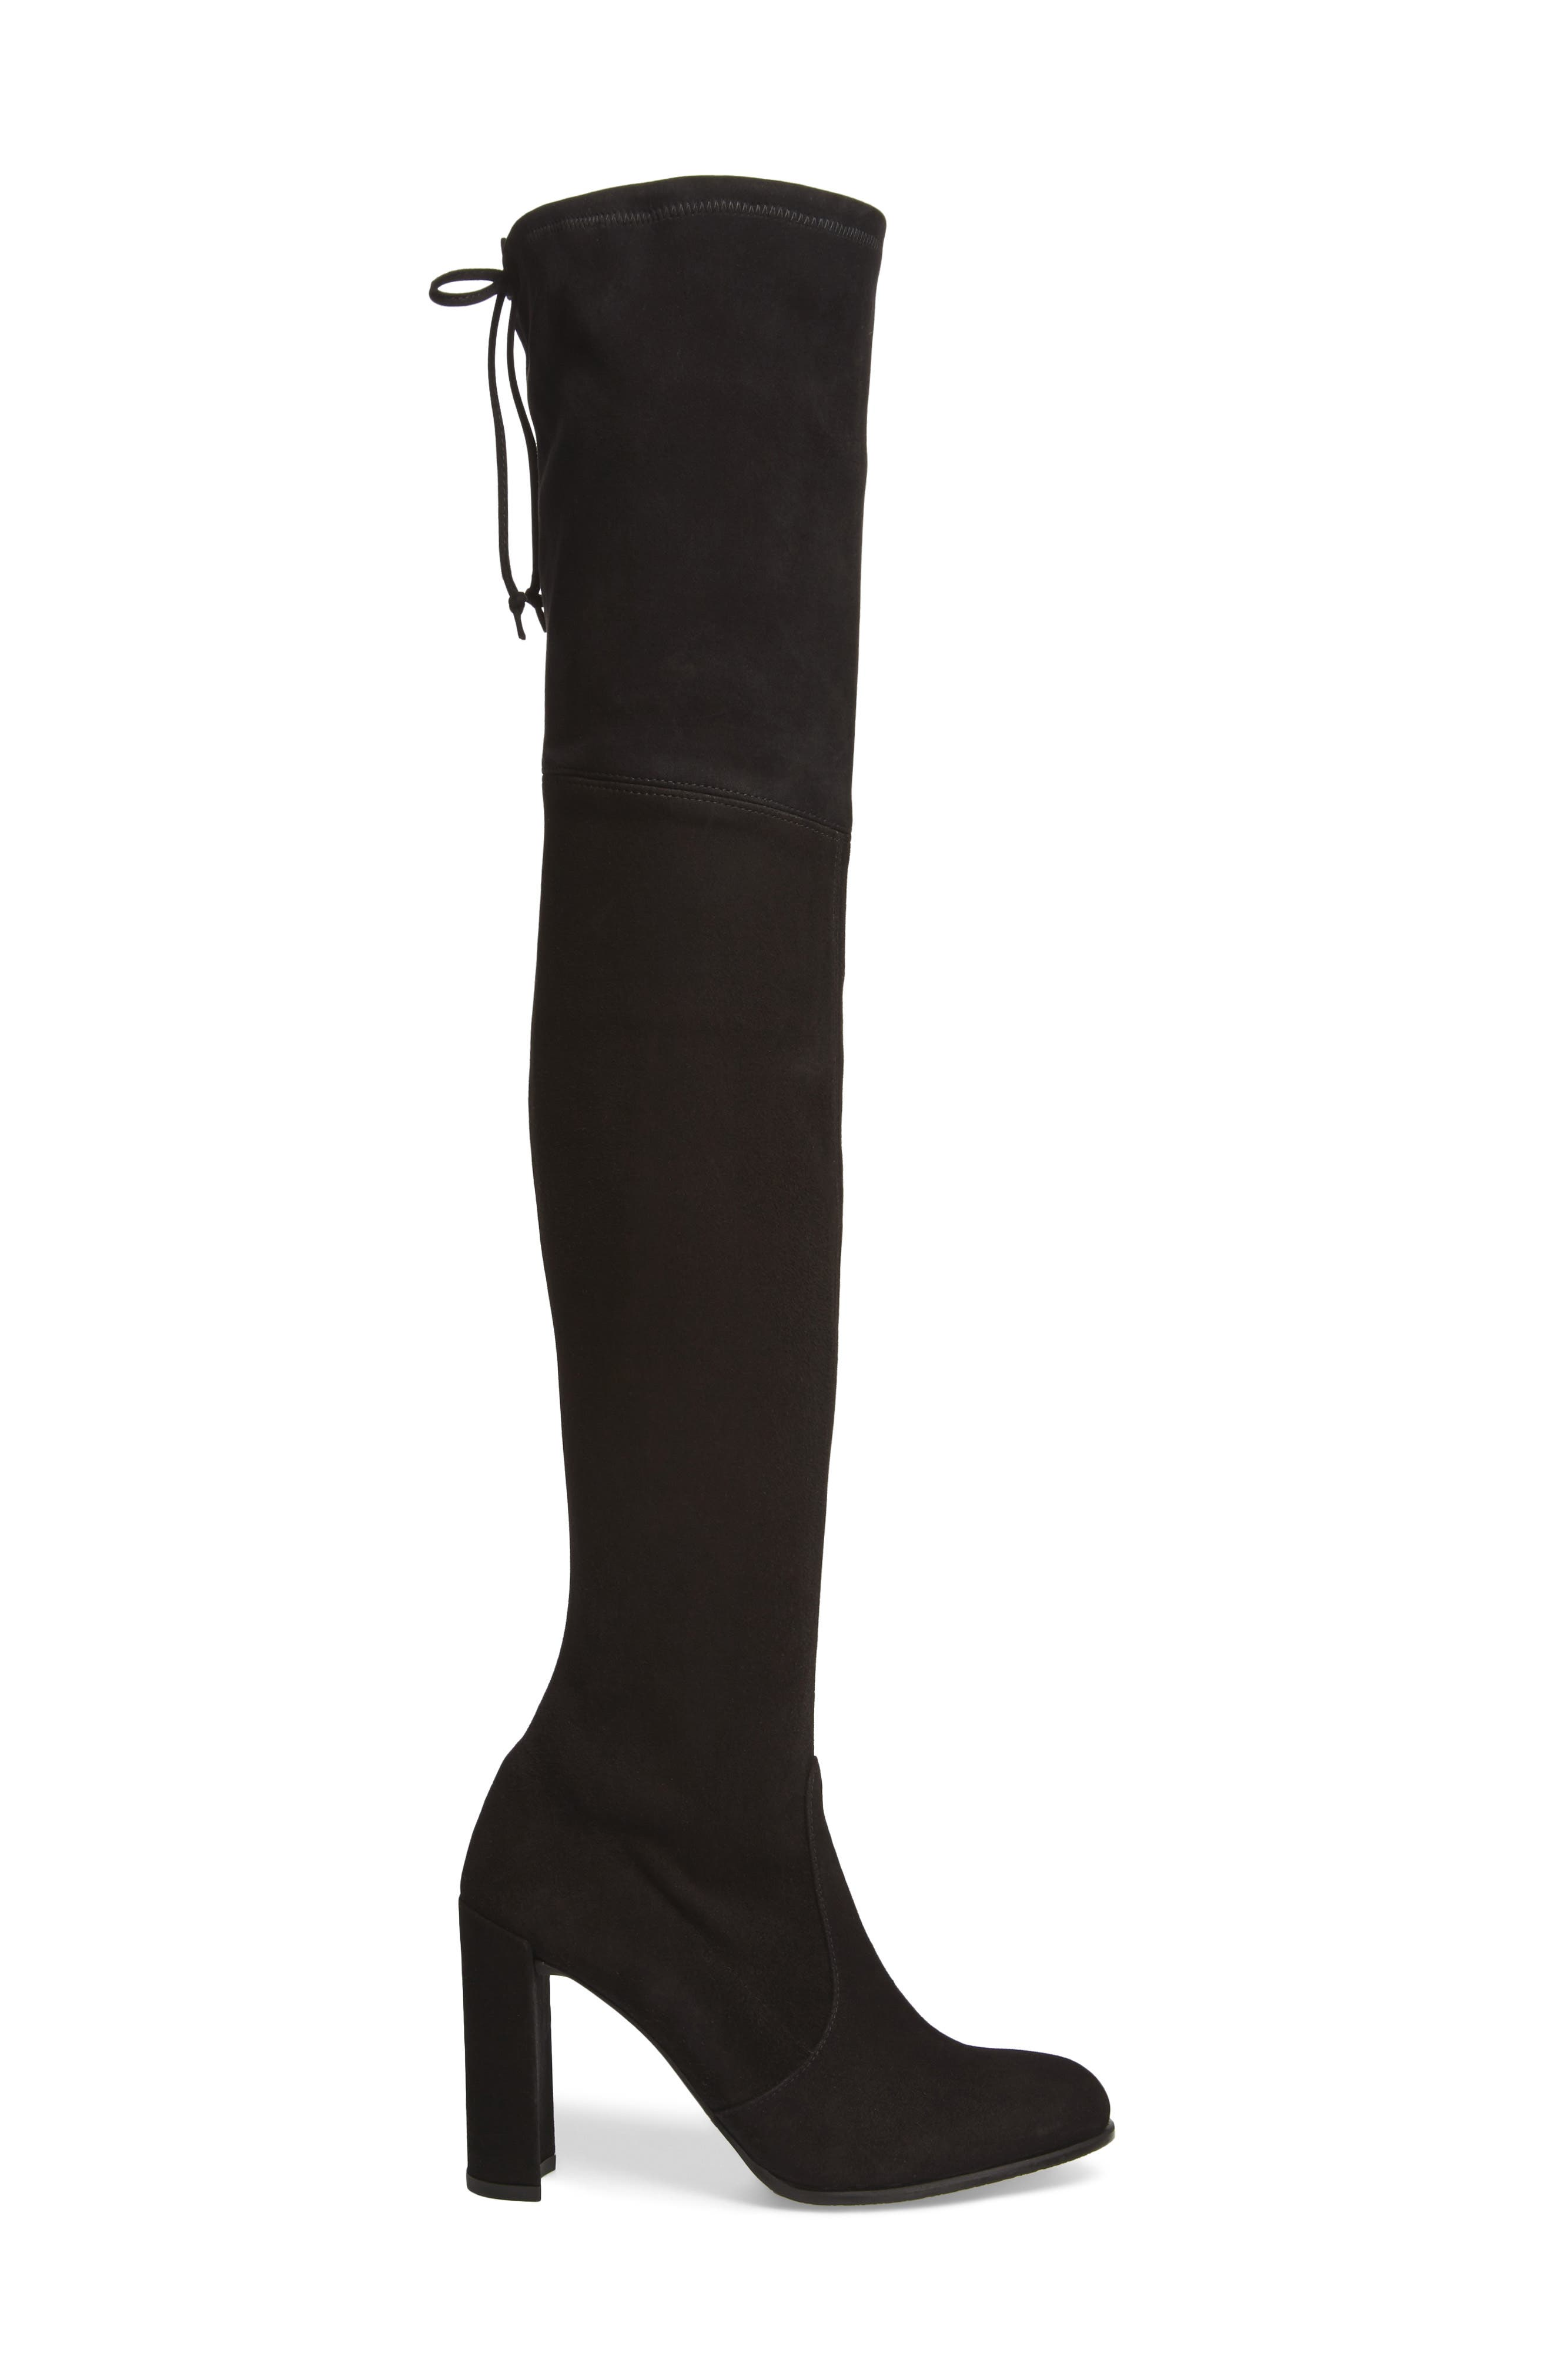 Hiline Over the Knee Boot,                             Alternate thumbnail 3, color,                             Black Suede